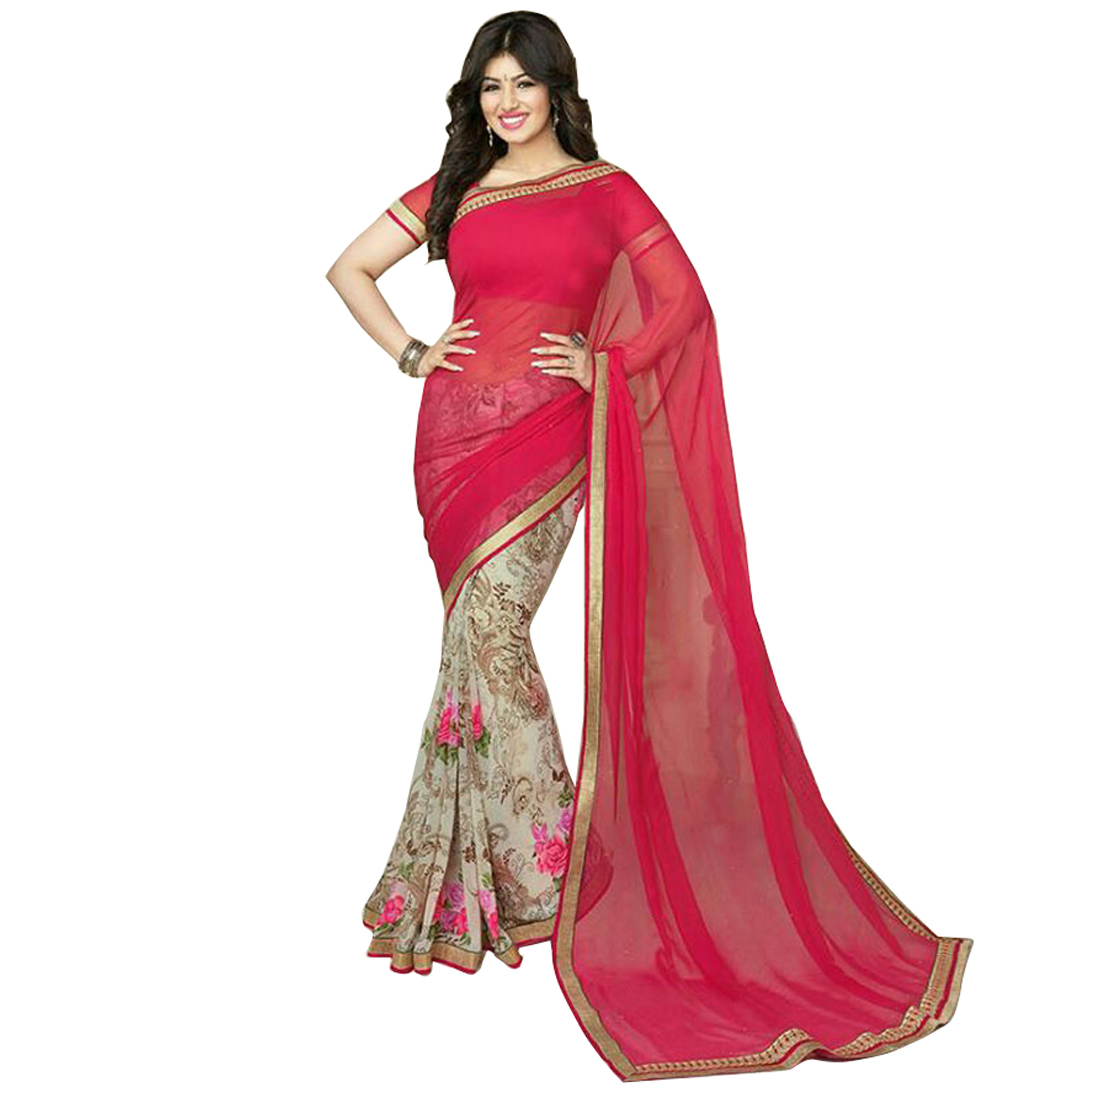 Mastani- Designer Heavy Printed Work With Lace Border Saree